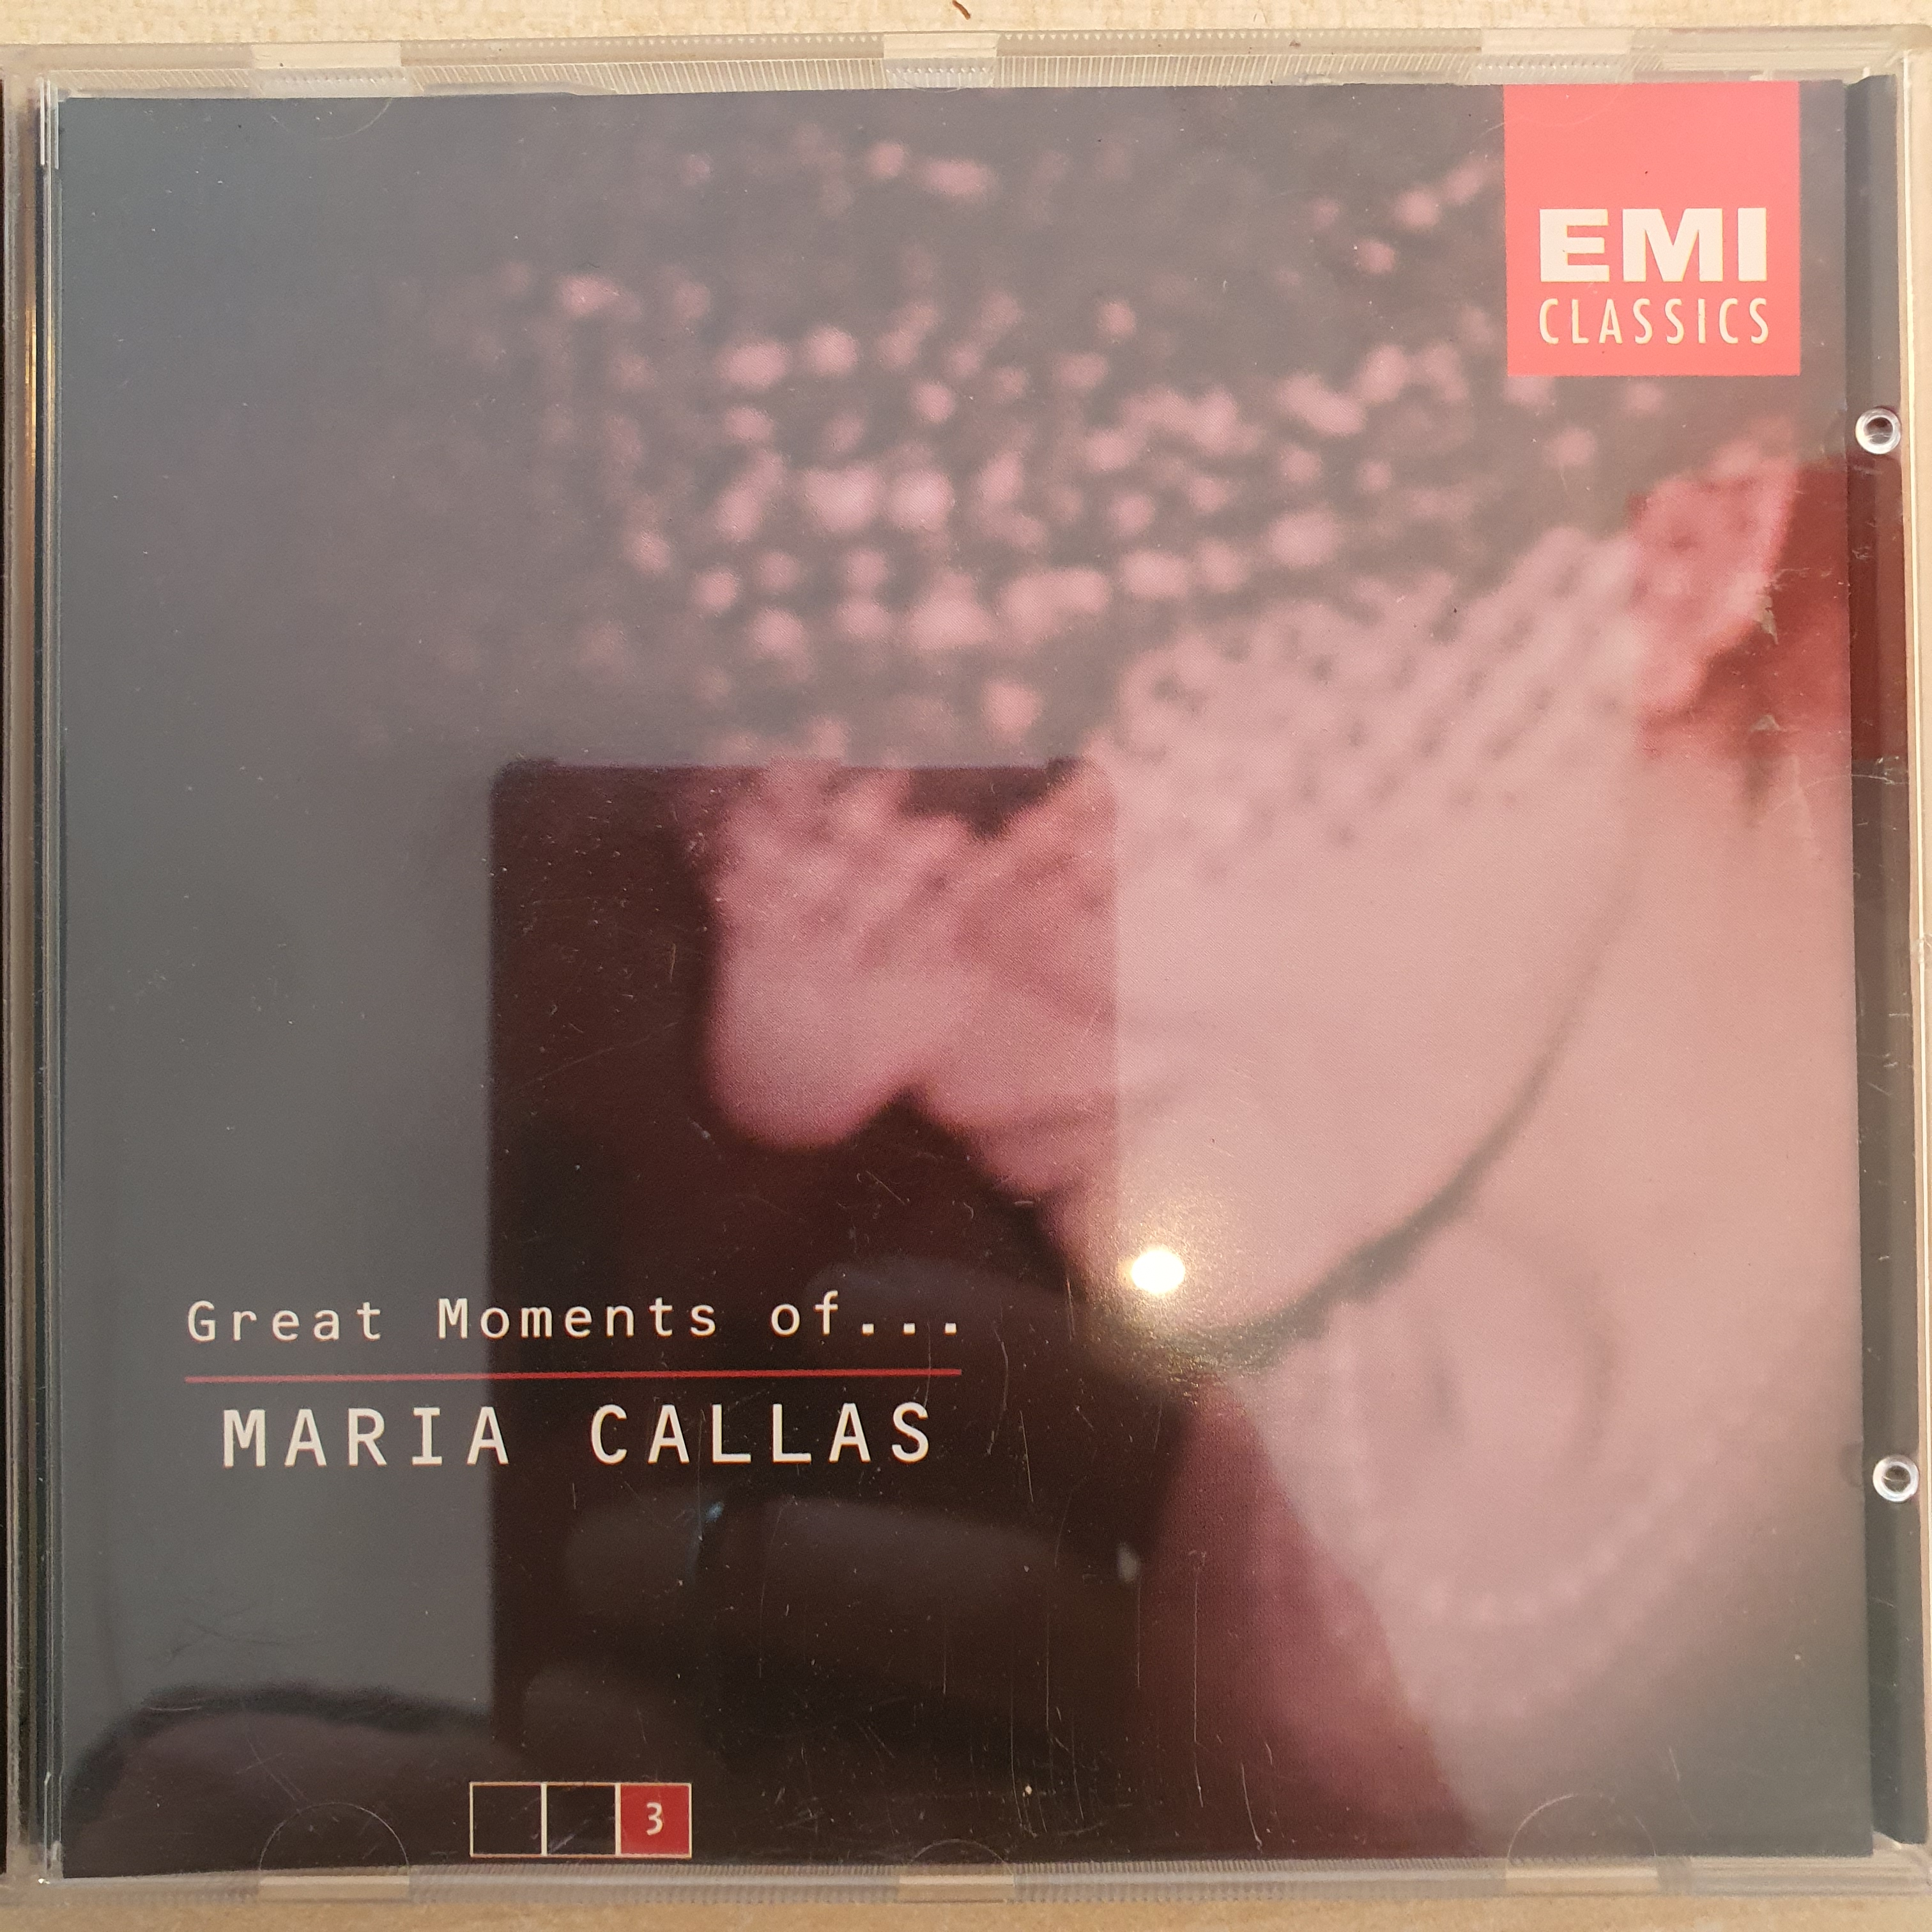 CD Maria Callas Great Moments kostenlos